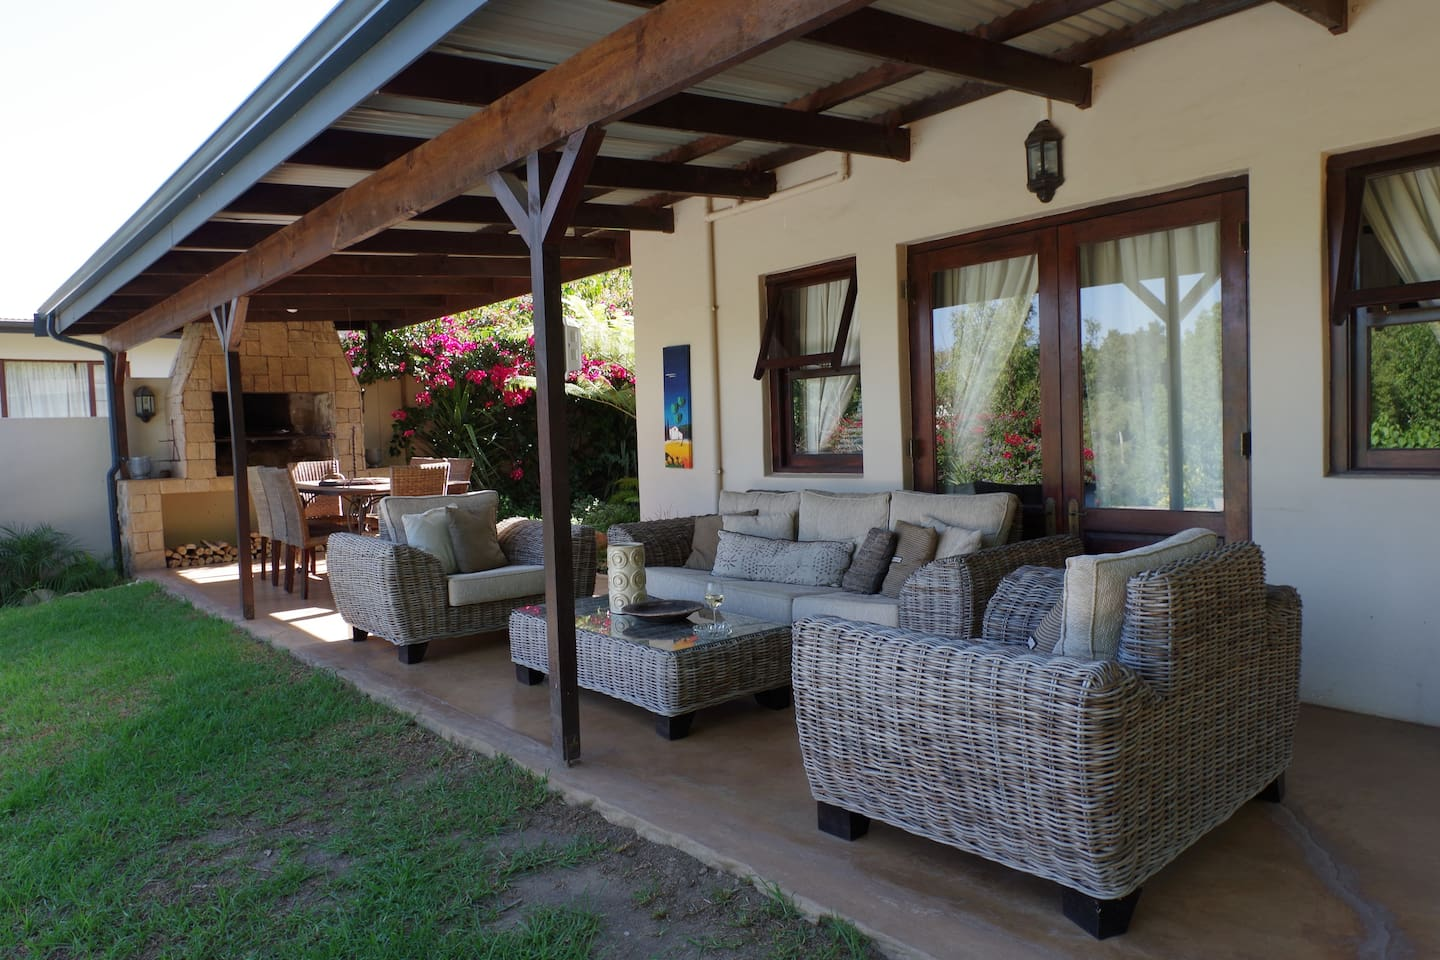 Undercover patio with built in braai facilities and beautiful views